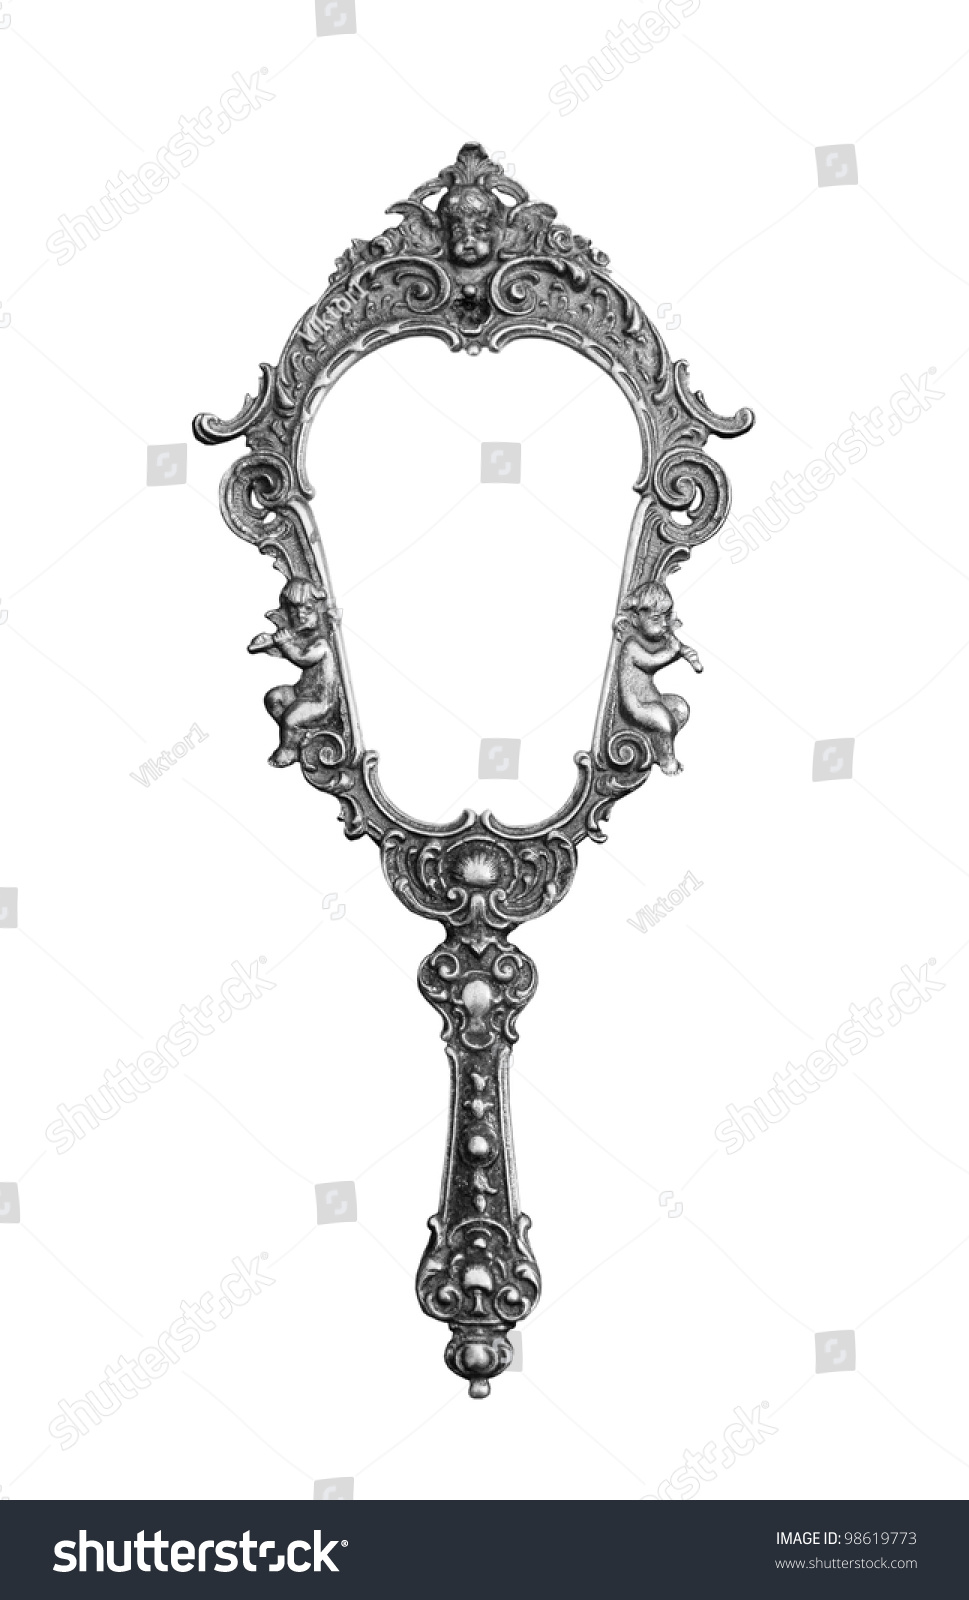 hand mirror sketch. Vintage Hand-held Mirror Isolated On White #98619773 Hand Sketch G